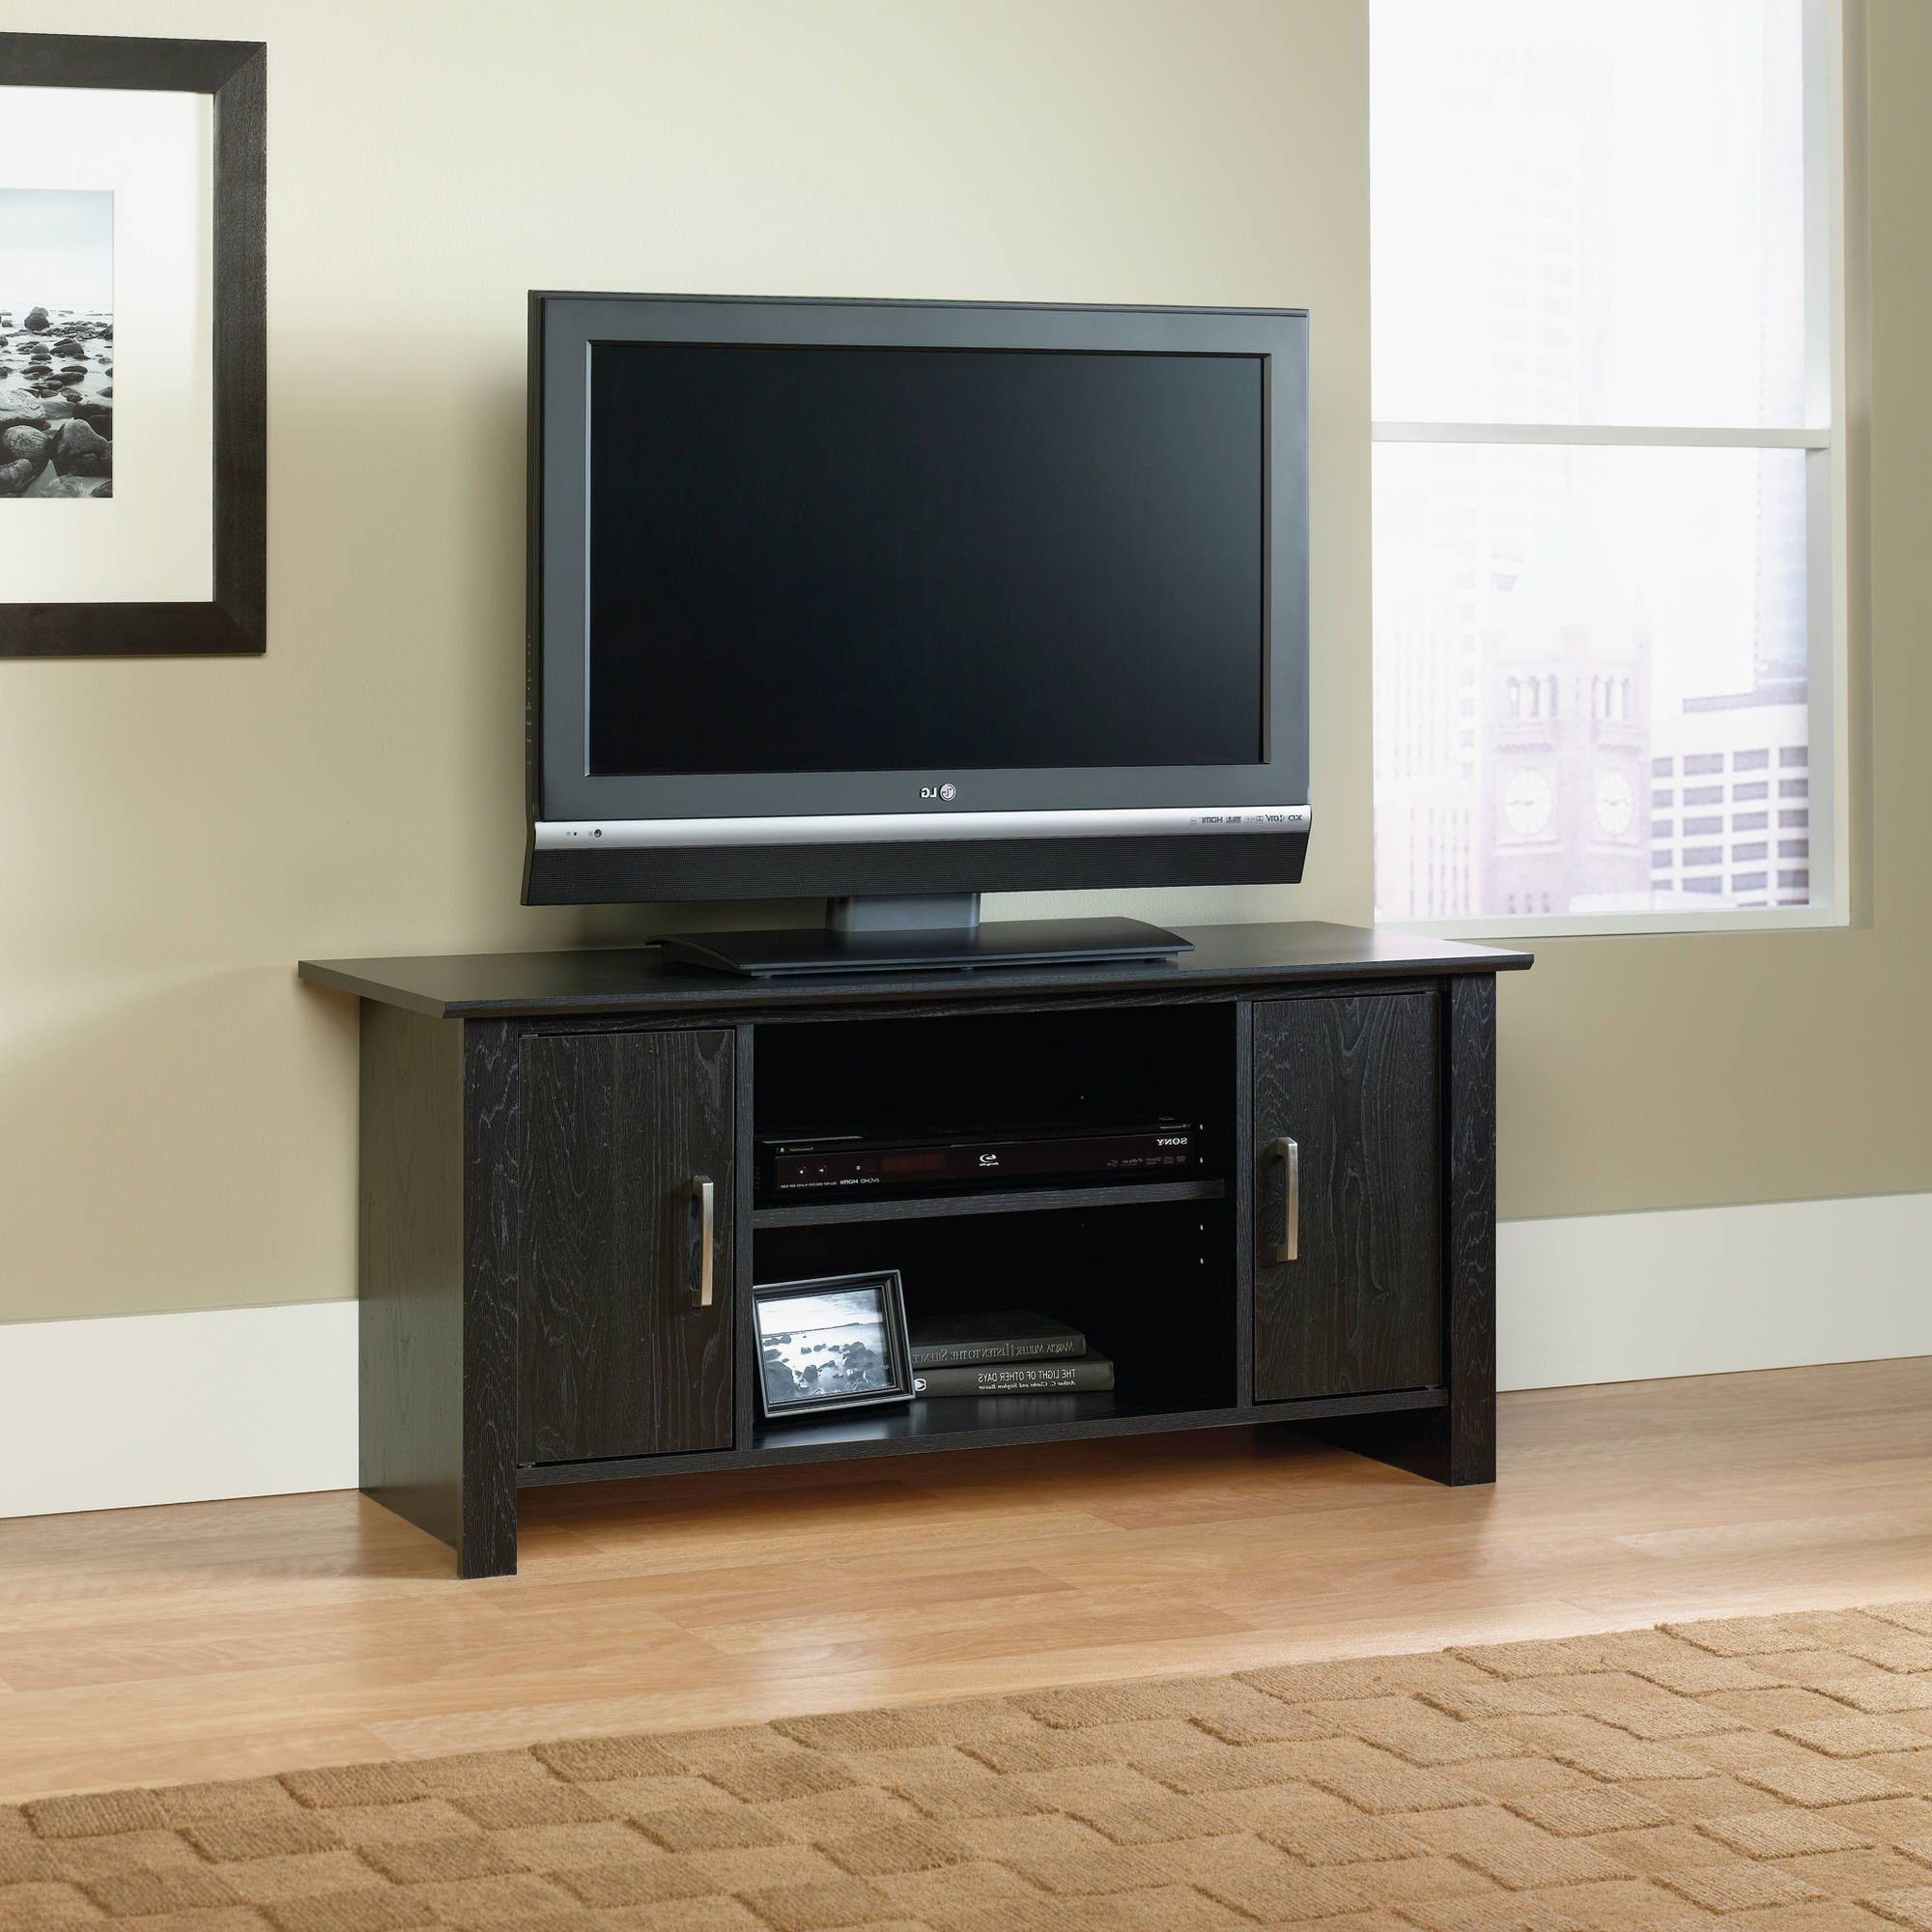 "Best And Newest Buy Mainstays Tv Stand For Flat Screen Tvs Up To 42"" At Walmart For Cheap Tv Table Stands (View 4 of 20)"